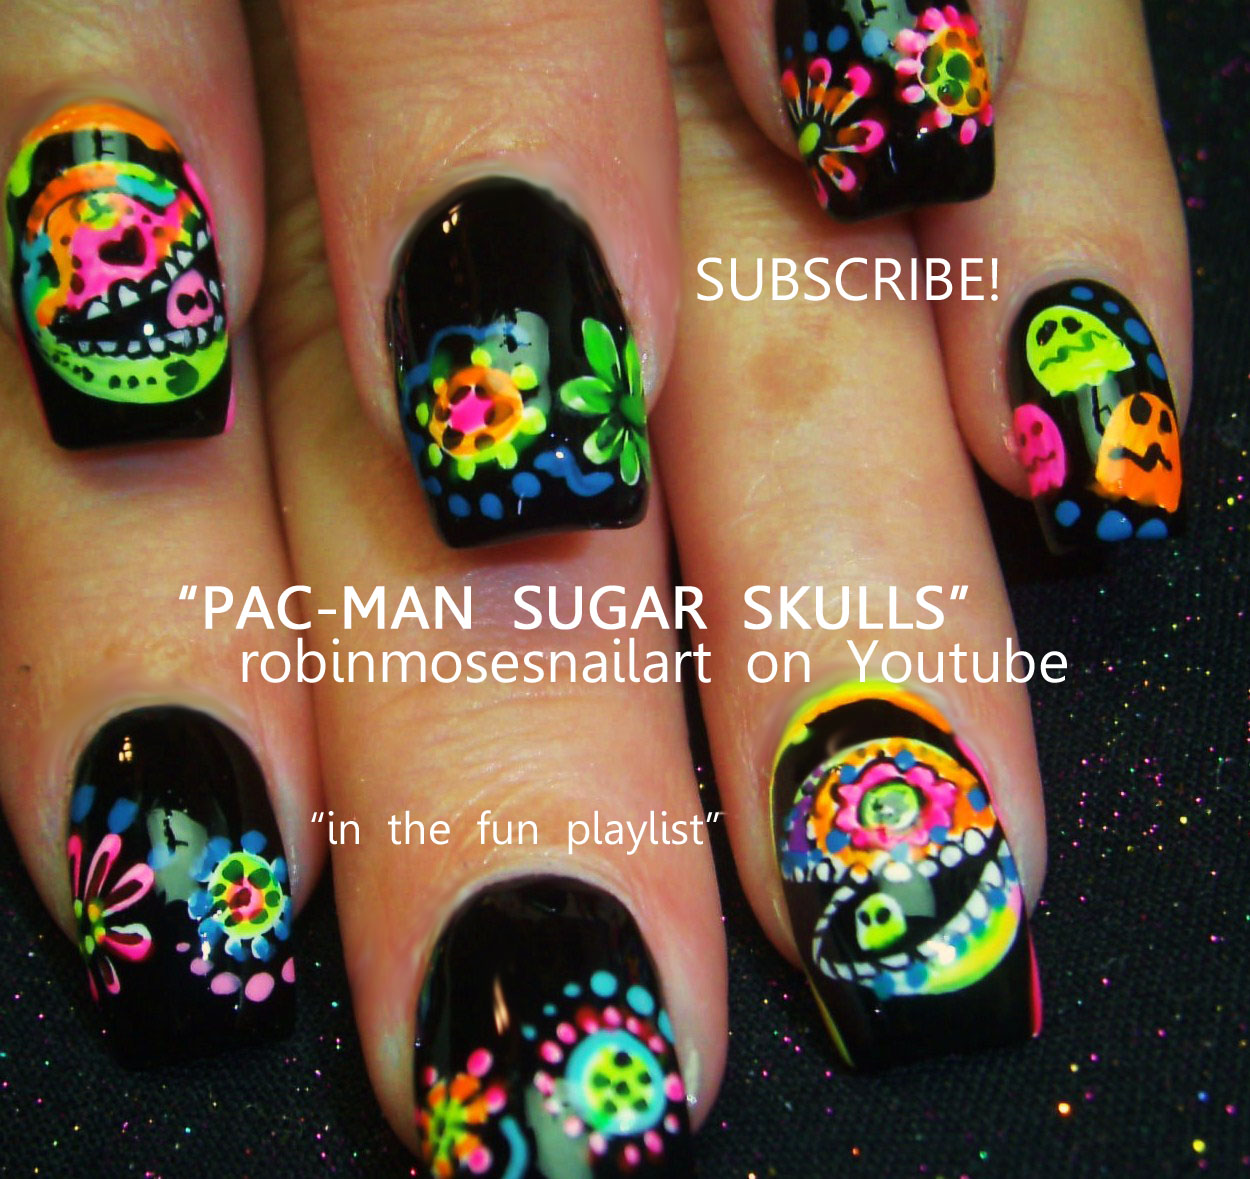 Day of the dead pacman nail pac man nails matte red nails matte day of the dead pacman nail pac man nails matte red nails matte red and gold nails indian wedding nails saree gold and red design retro pacman nails prinsesfo Image collections